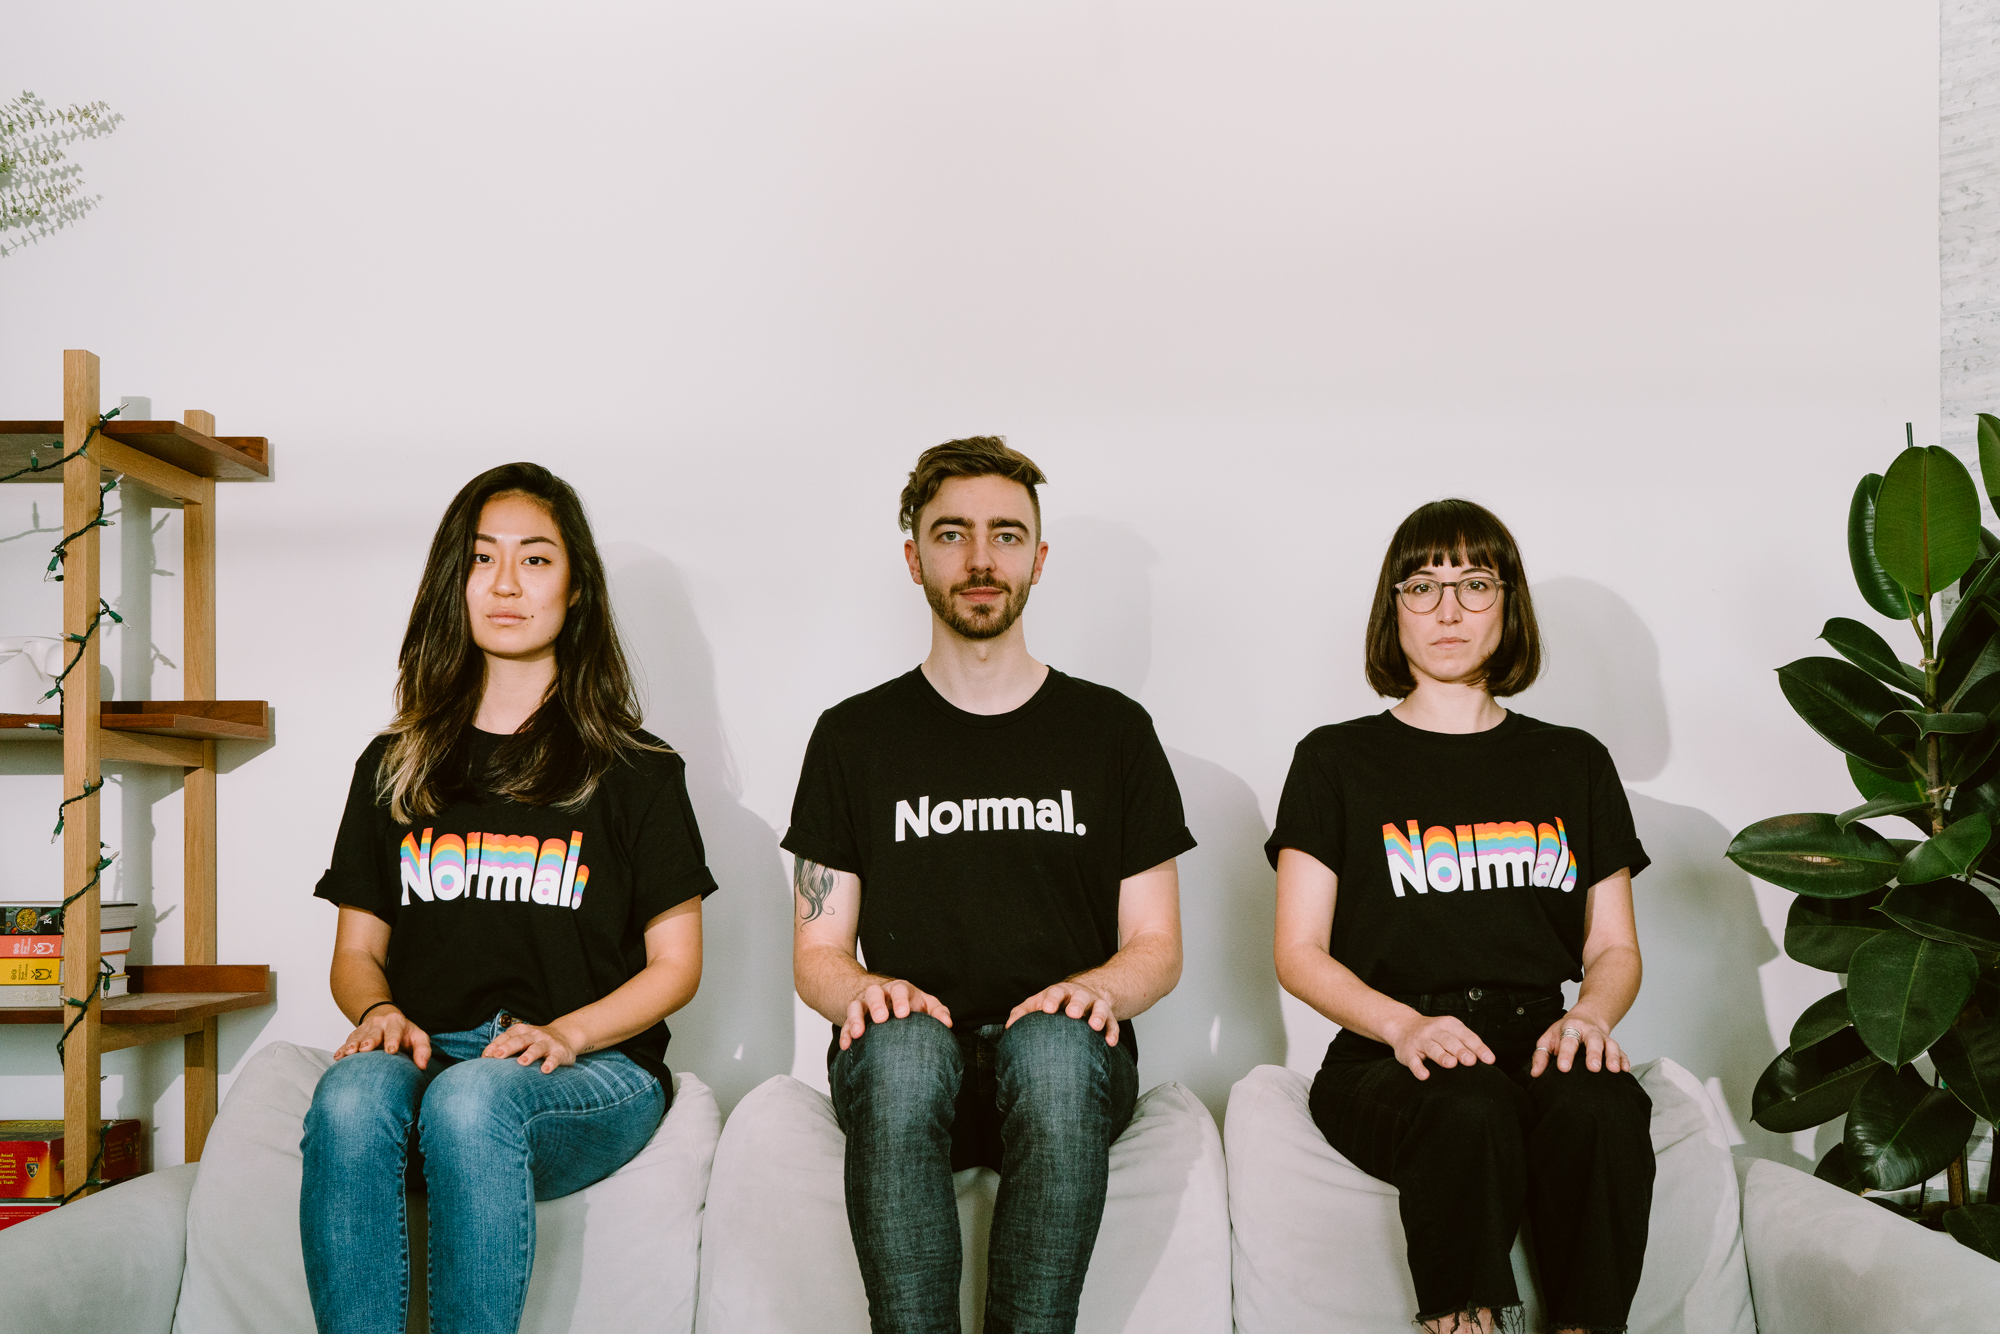 3 Normals on a couch